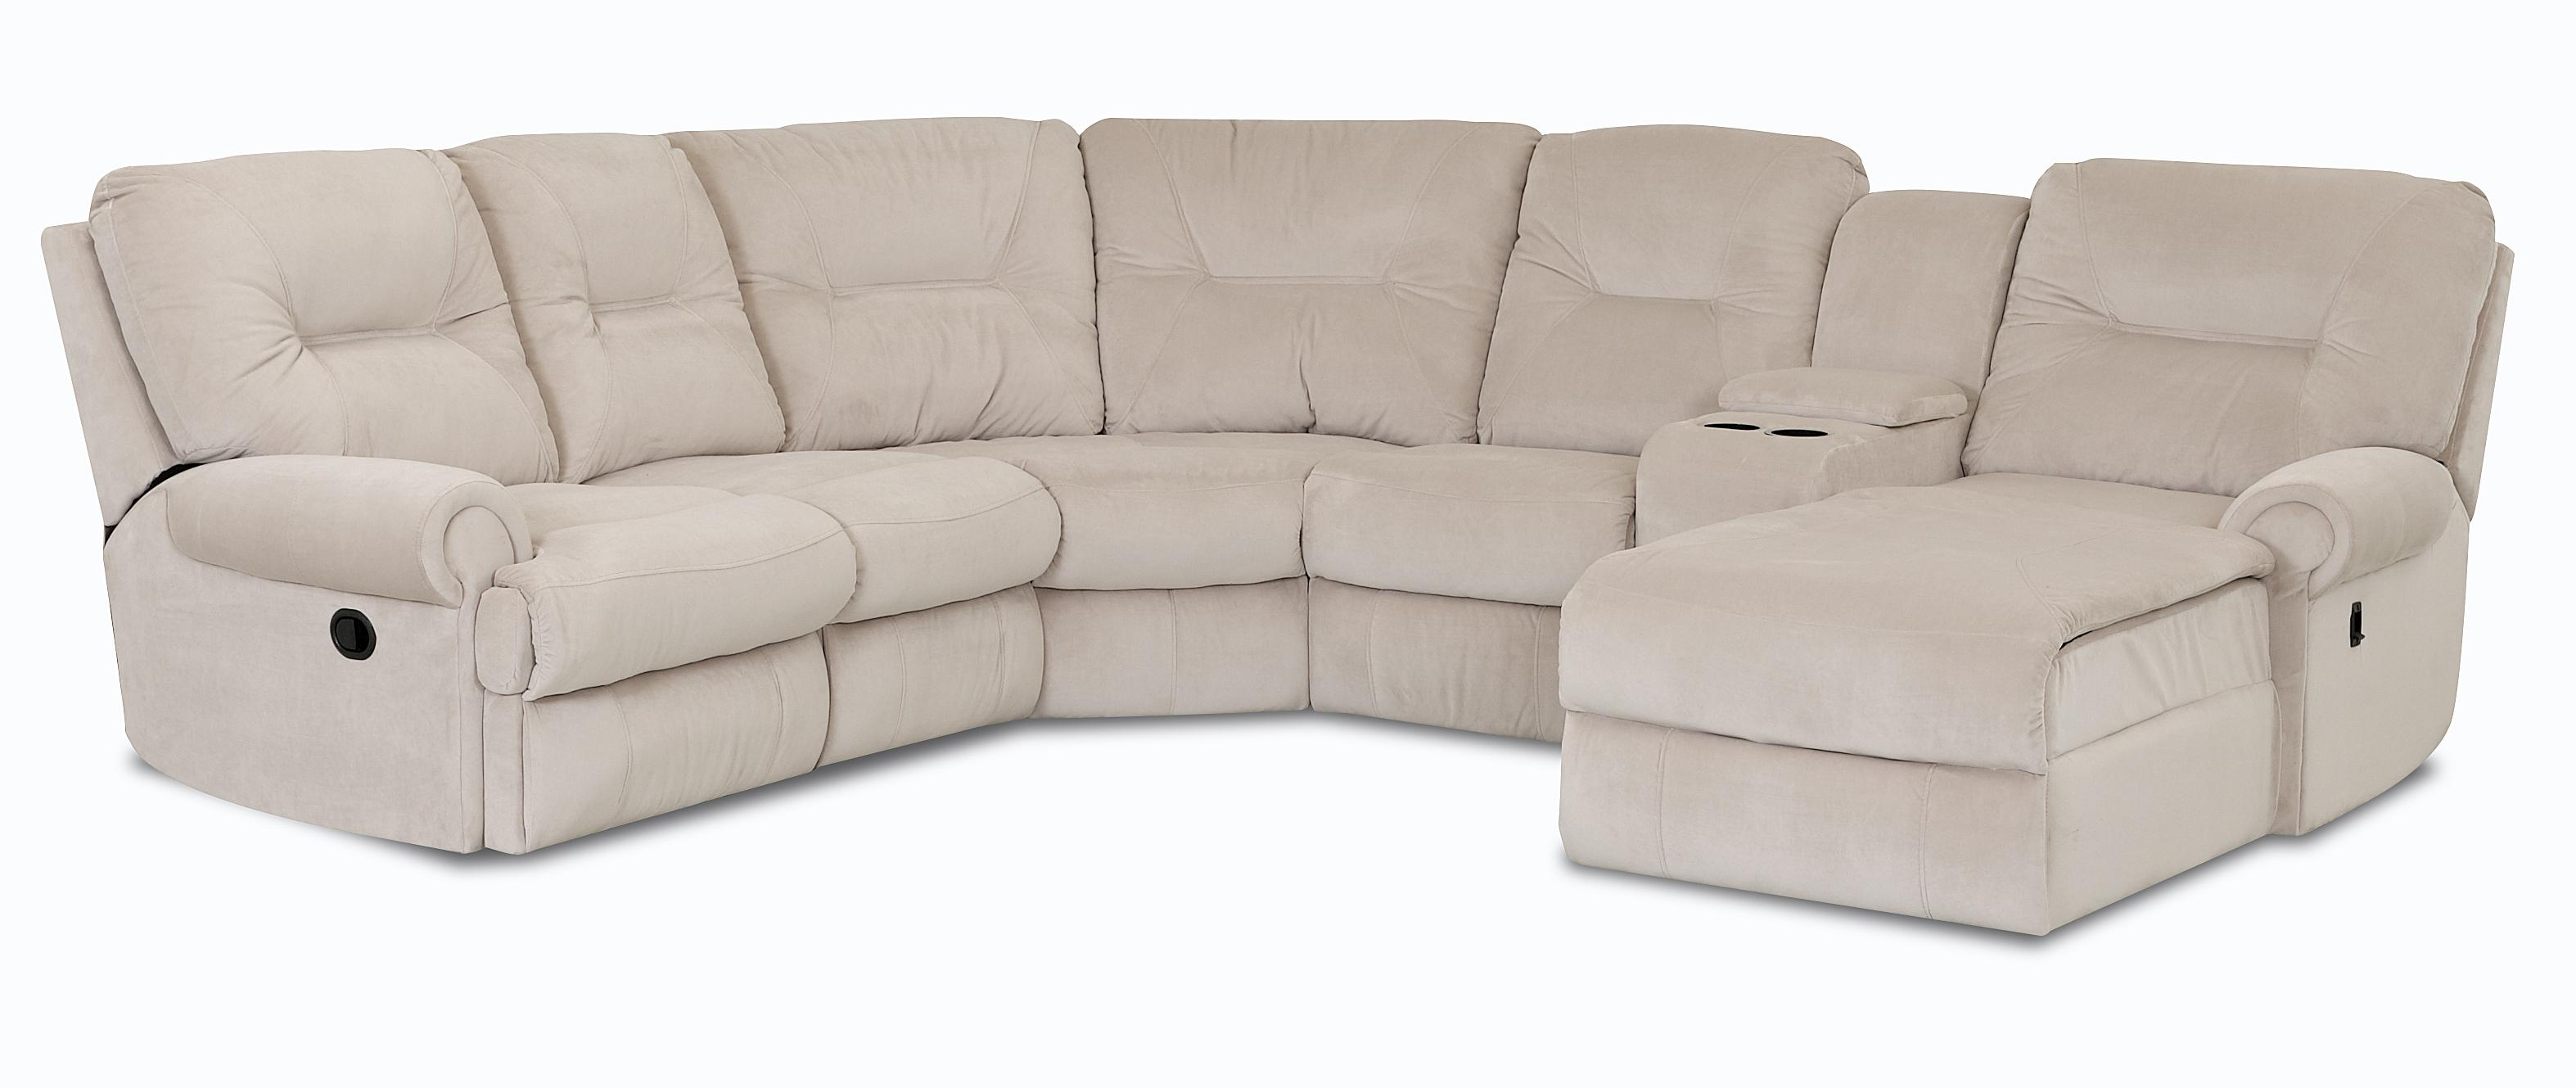 sectional sofa value city furniture adelaide white leather modern klaussner roadster traditional reclining